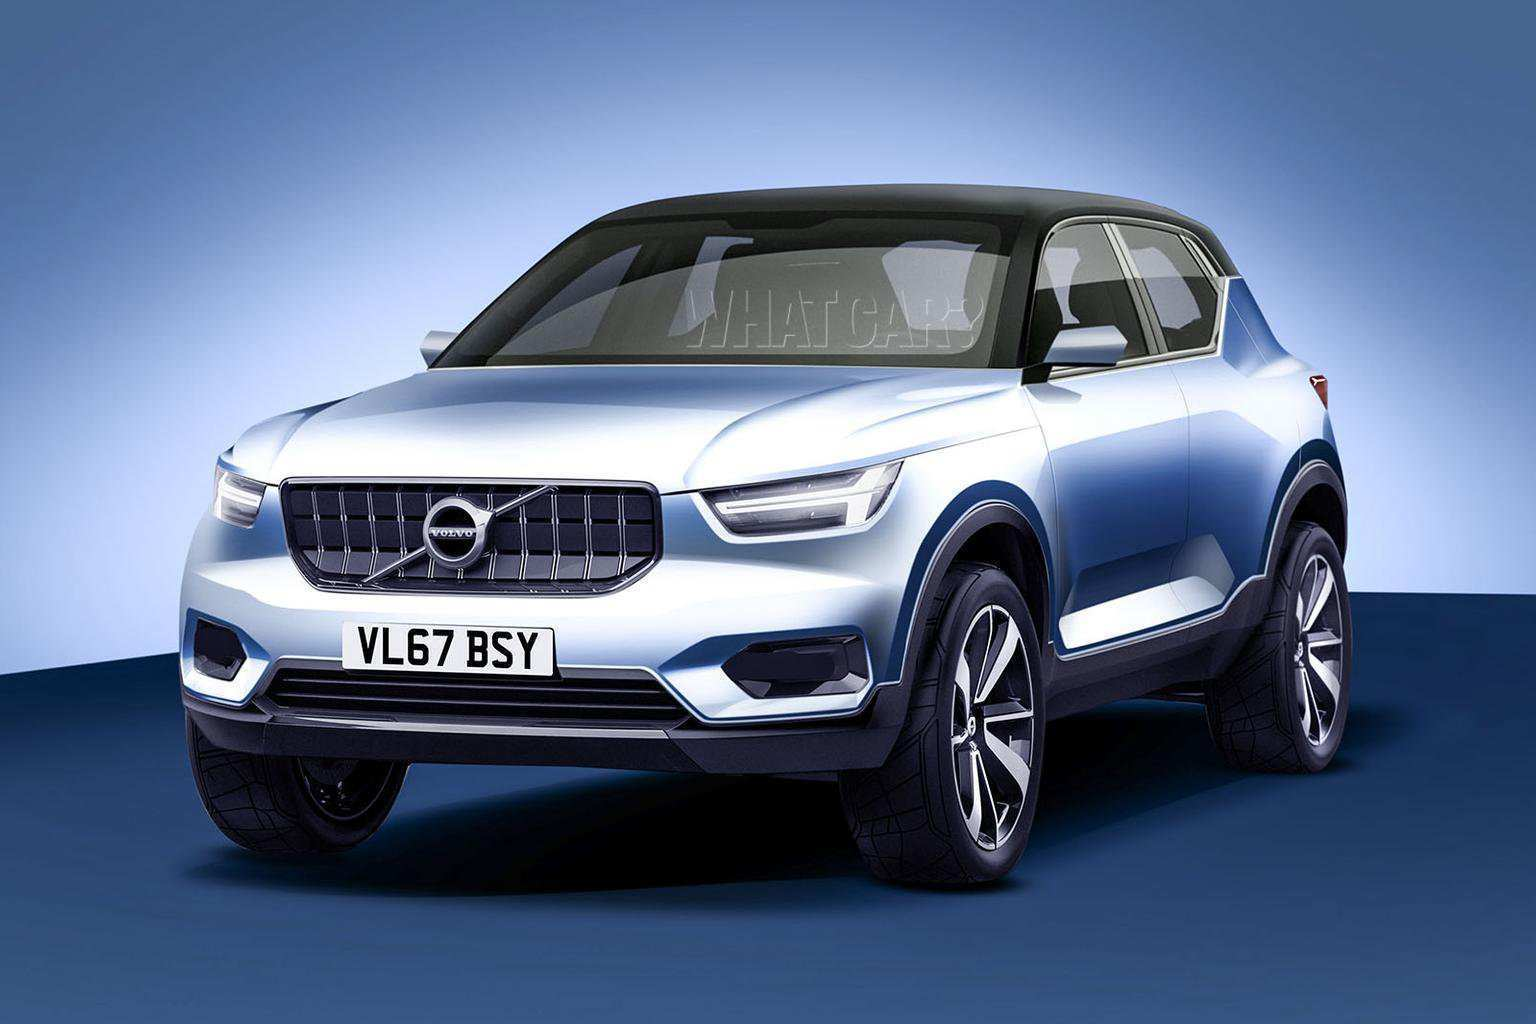 75 Concept of Electric Volvo 2019 Images with Electric Volvo 2019